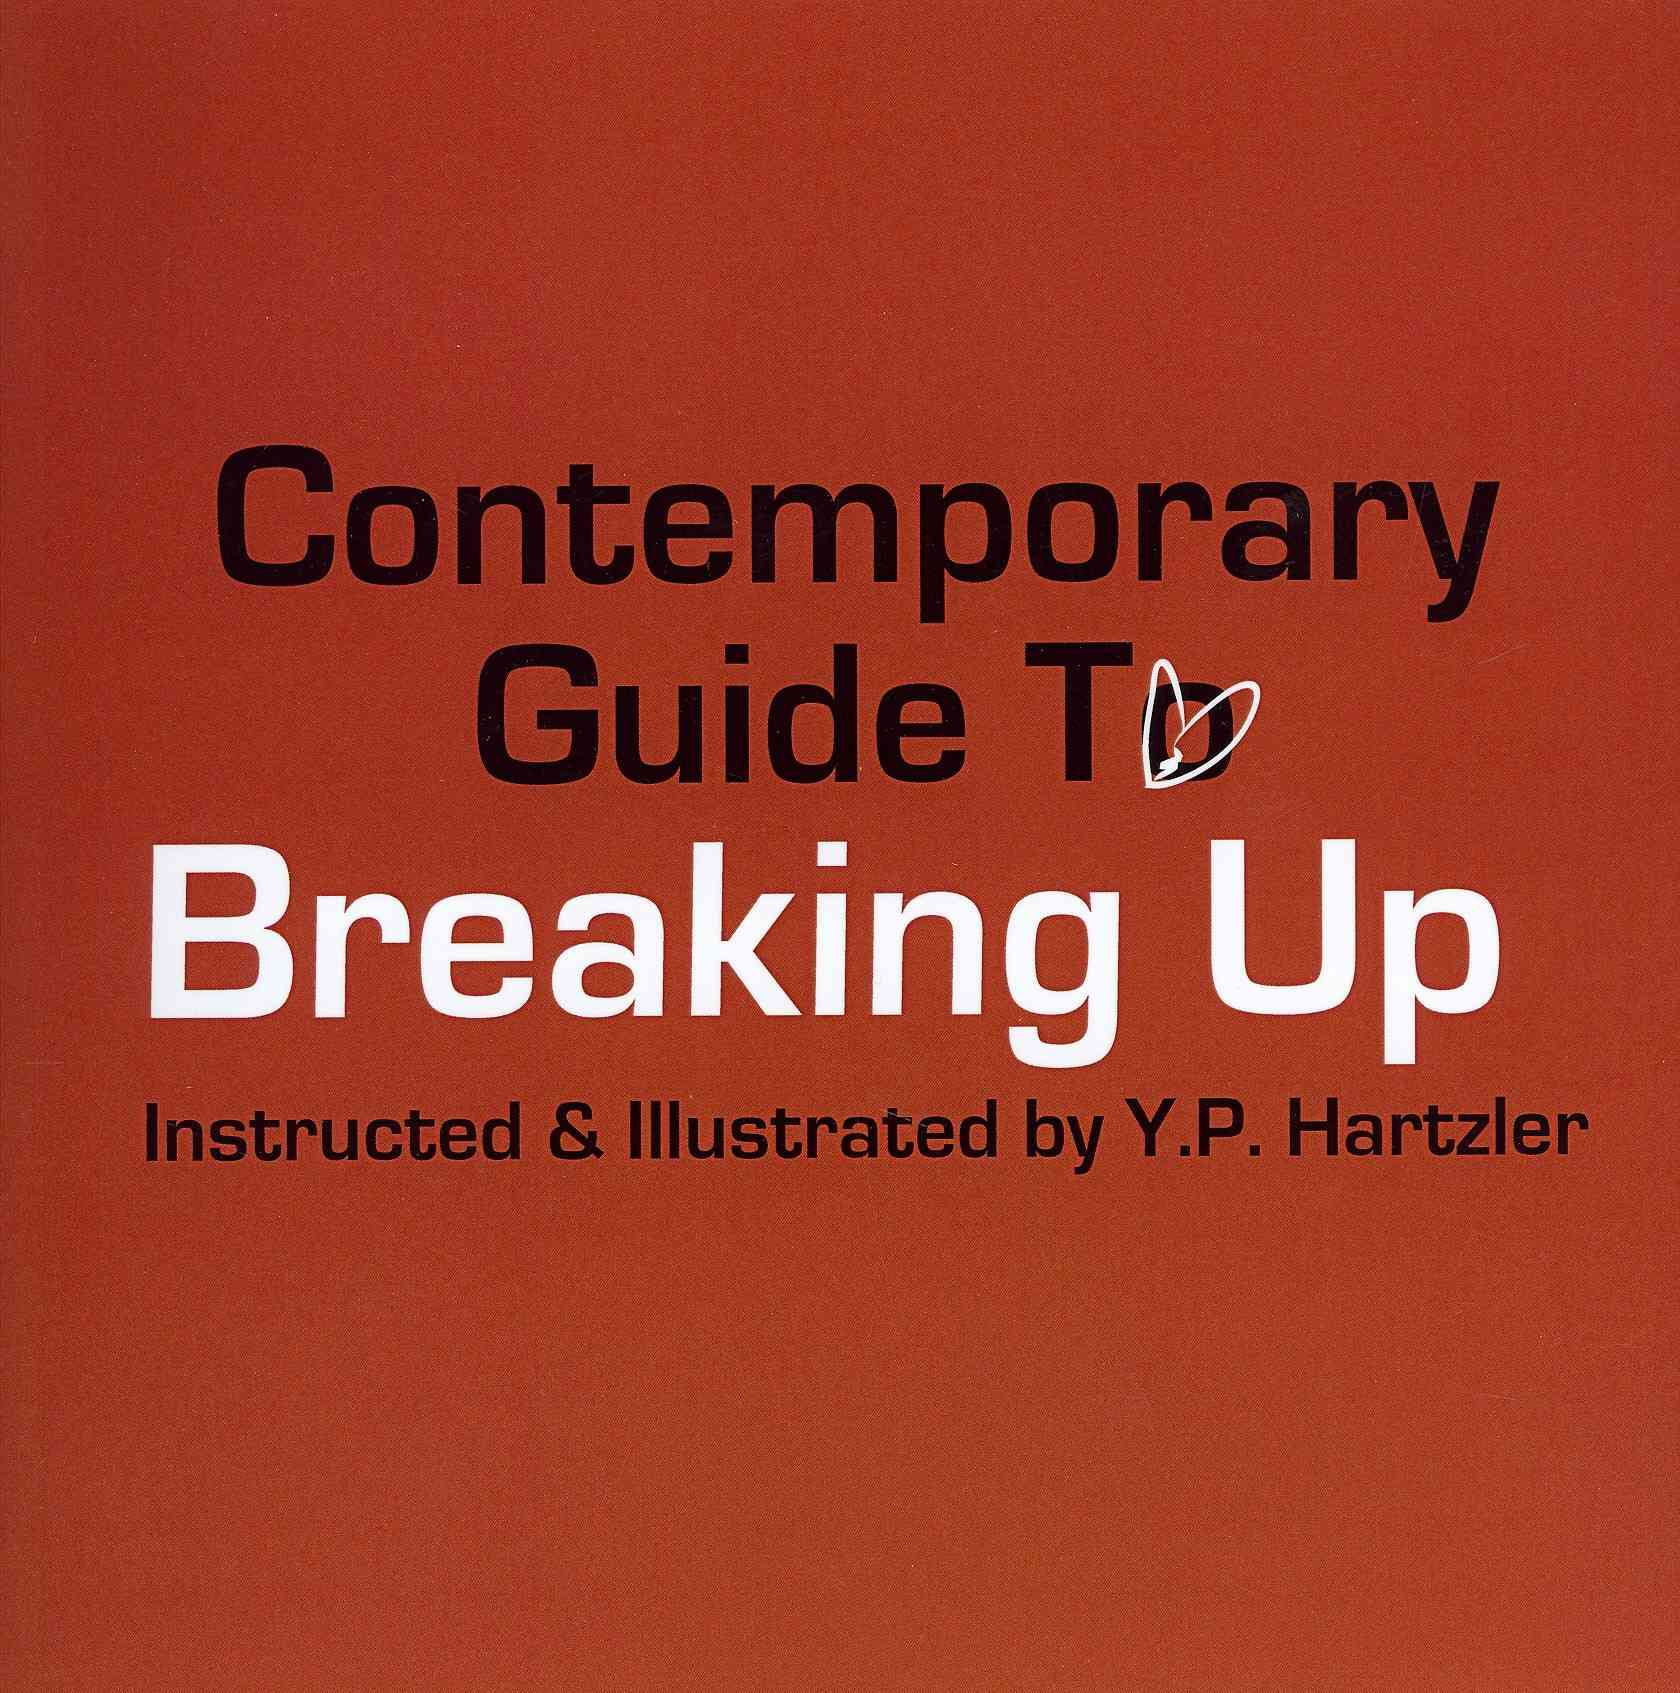 Contemporary Guide to Breaking Up By Hartzler, Y. P.